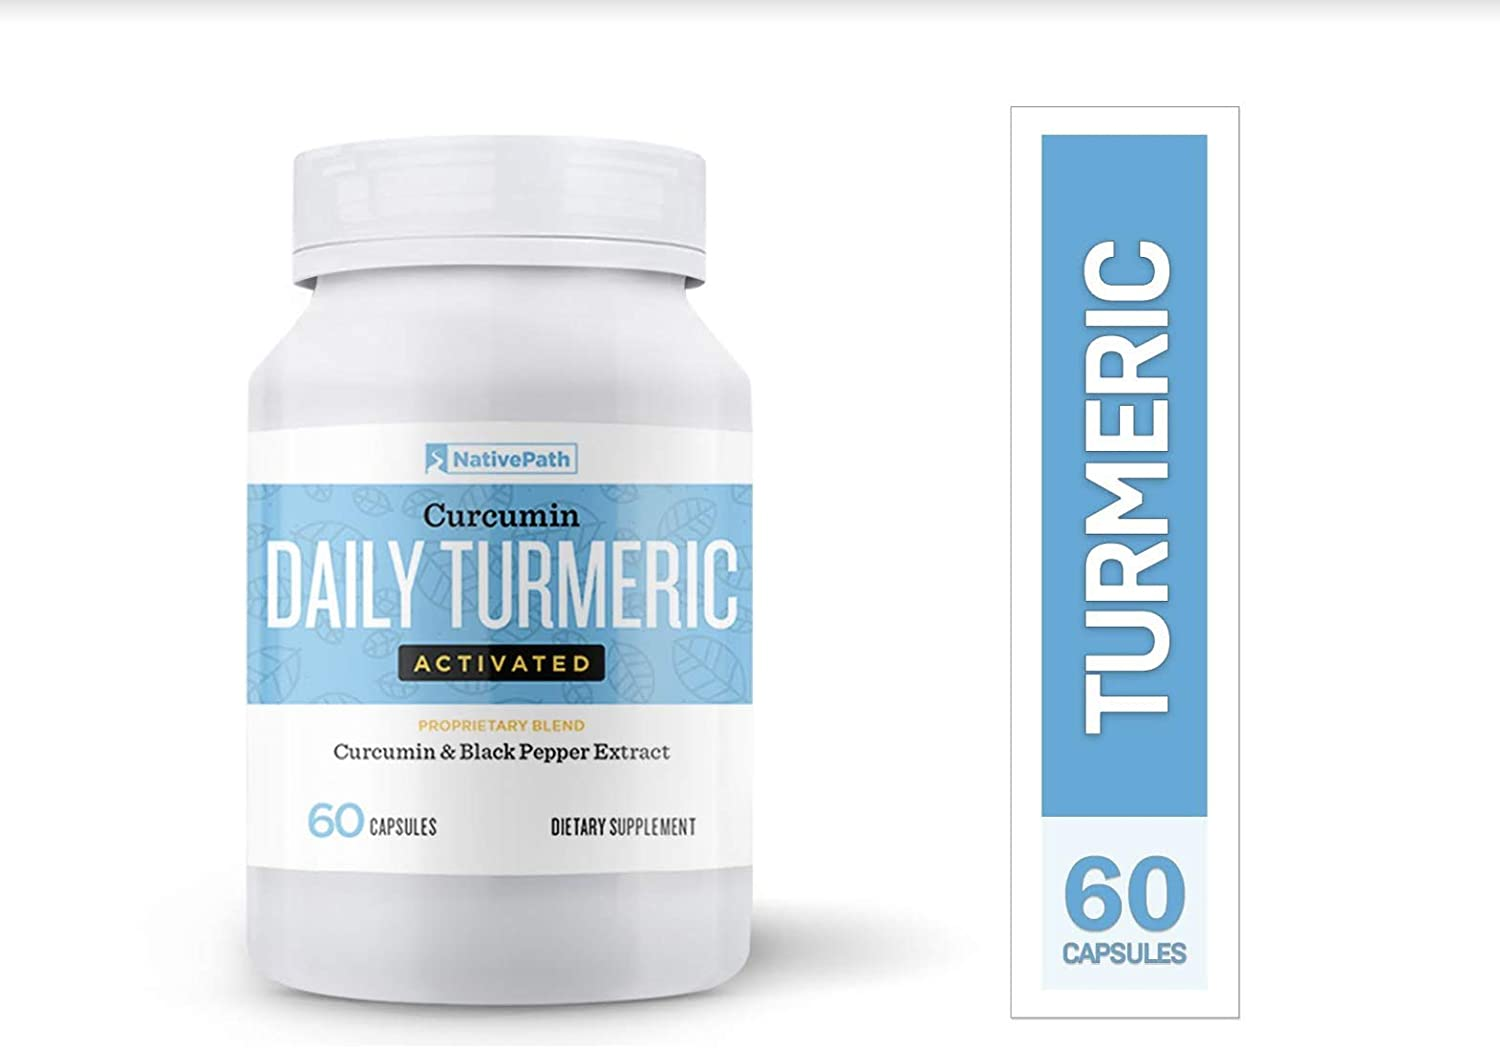 NativePath Daily Turmeric Activated Curcumin Black Pepper Extract, Anti-Inflammatory Capsules, Provides Joint Relief and Supports Your Immune System, Mood, Memory 2